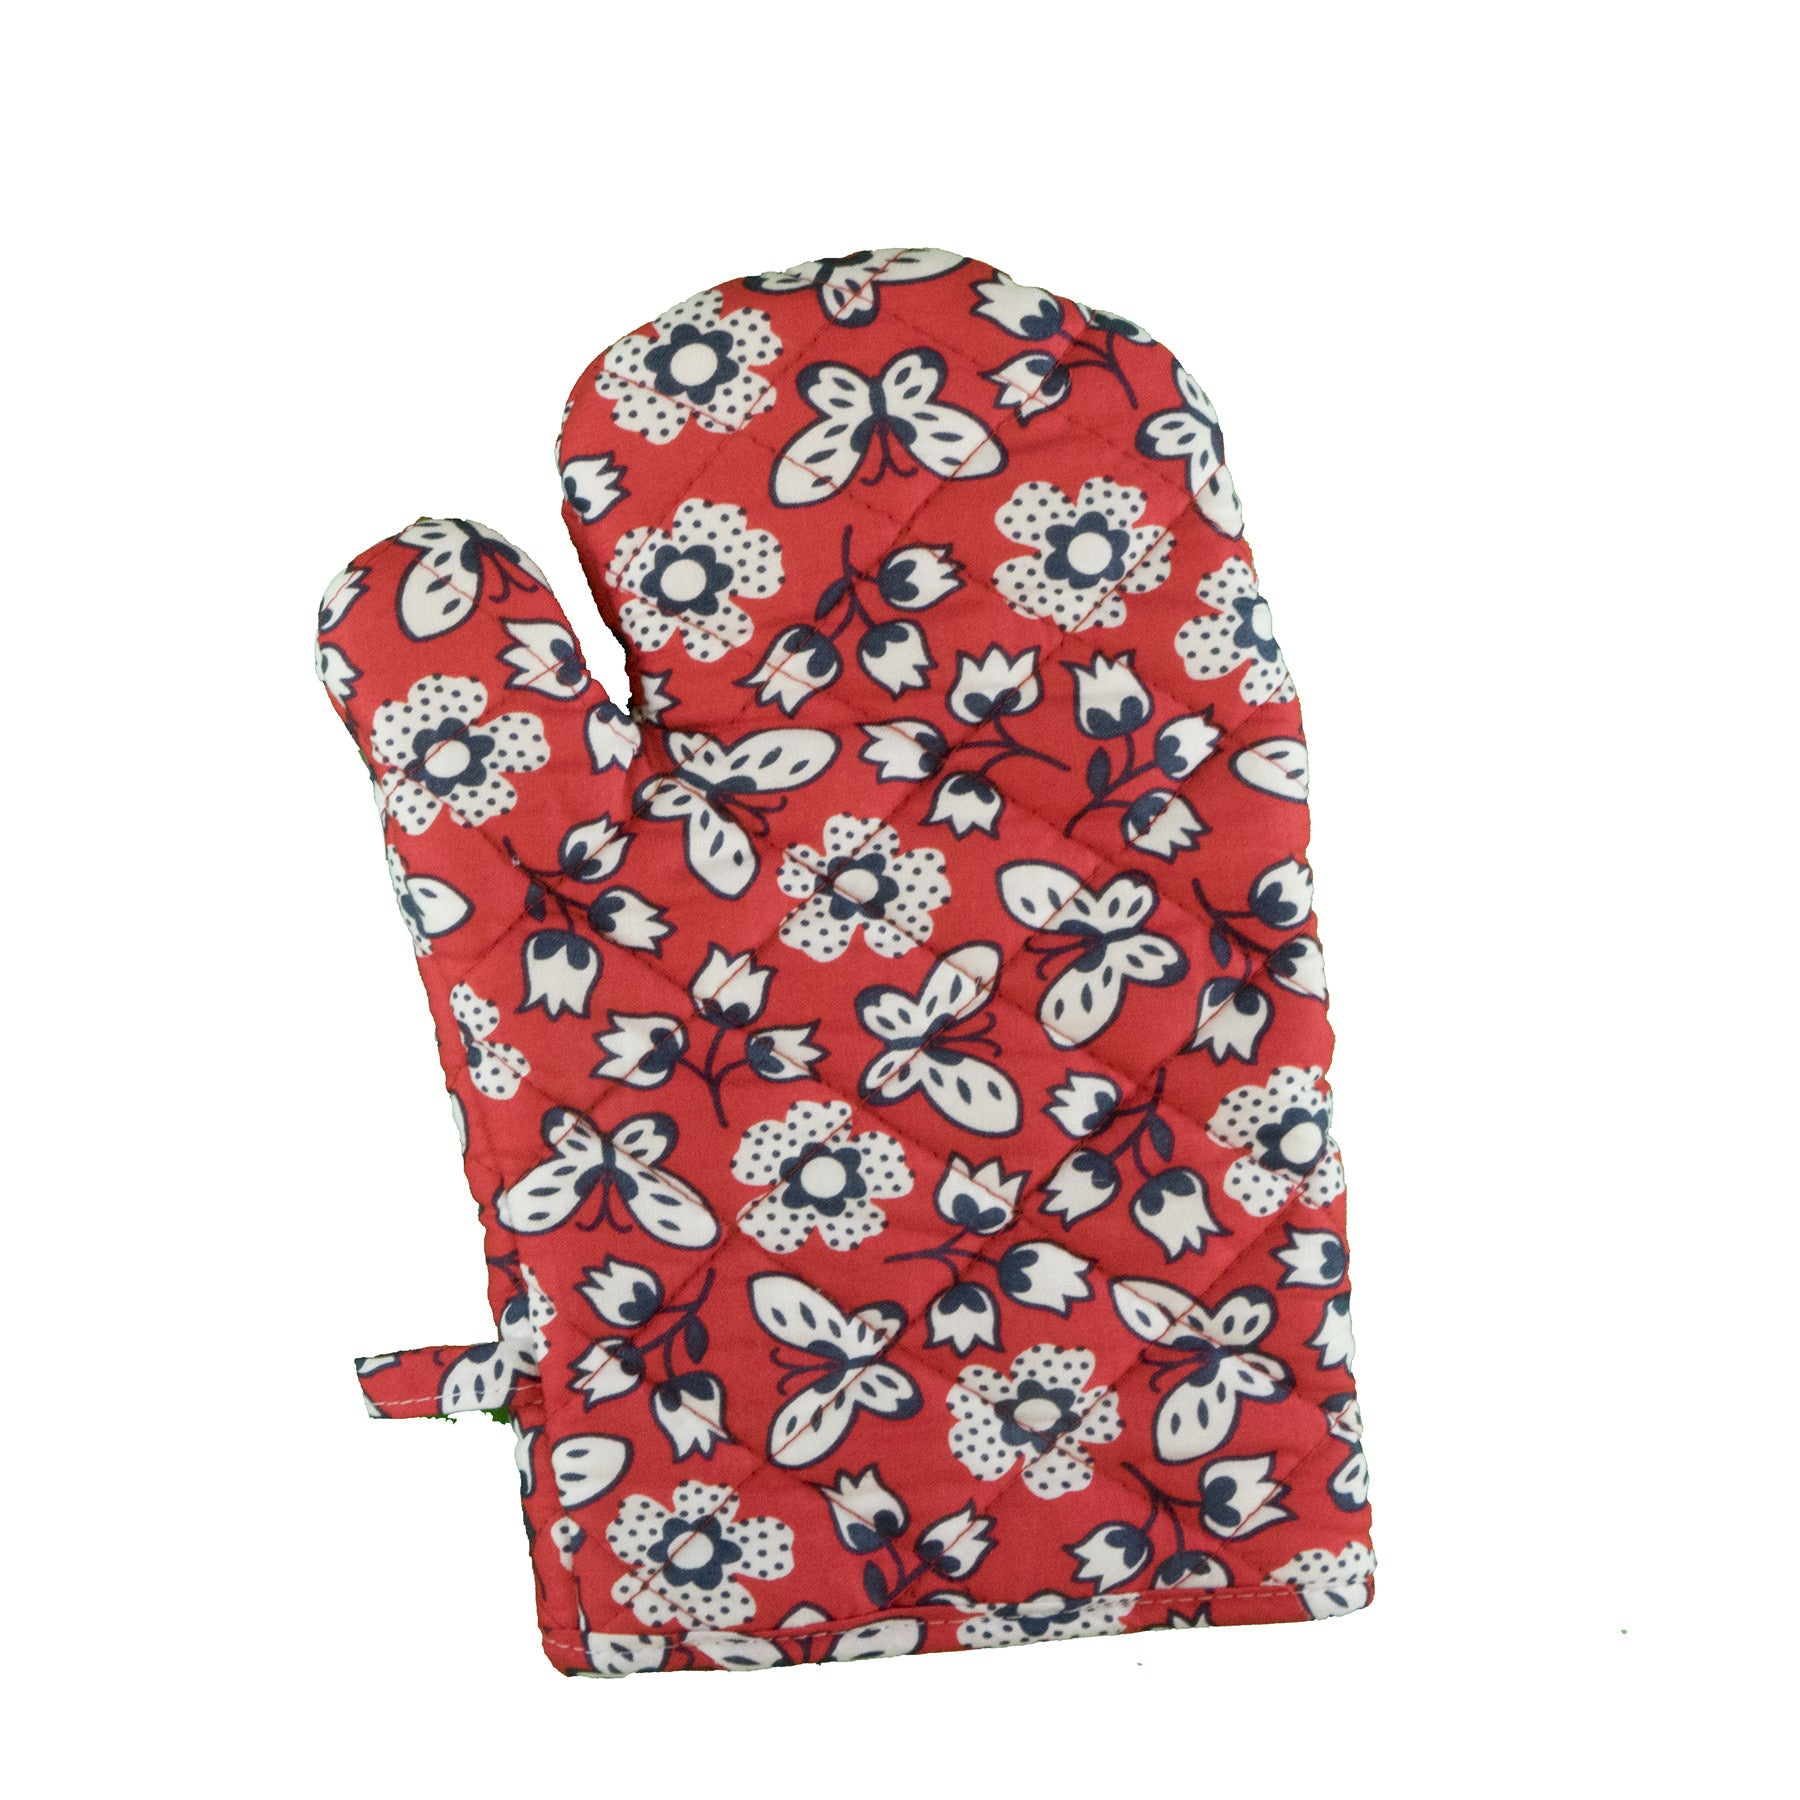 Stitch & Sparkle OVEN MITT 1 Piece Pack, Heat Resistant, 100% Cotton, Vintage, Butterfly Raspberry